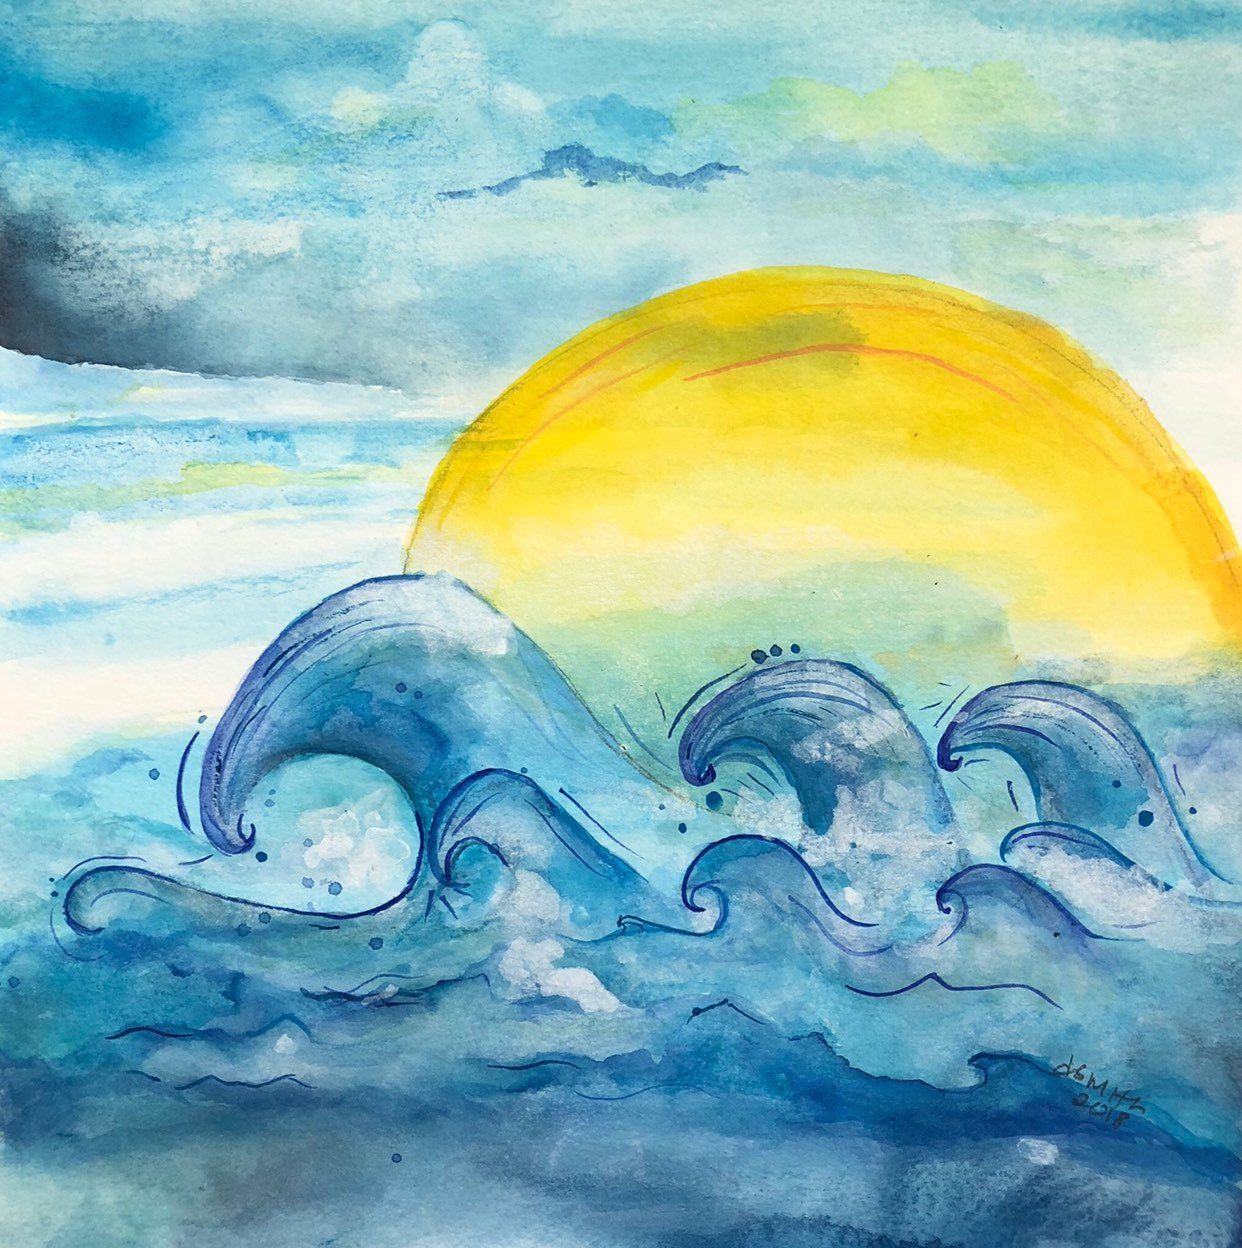 Sun Water Waves Original Watercolor Painting Abstract Unique